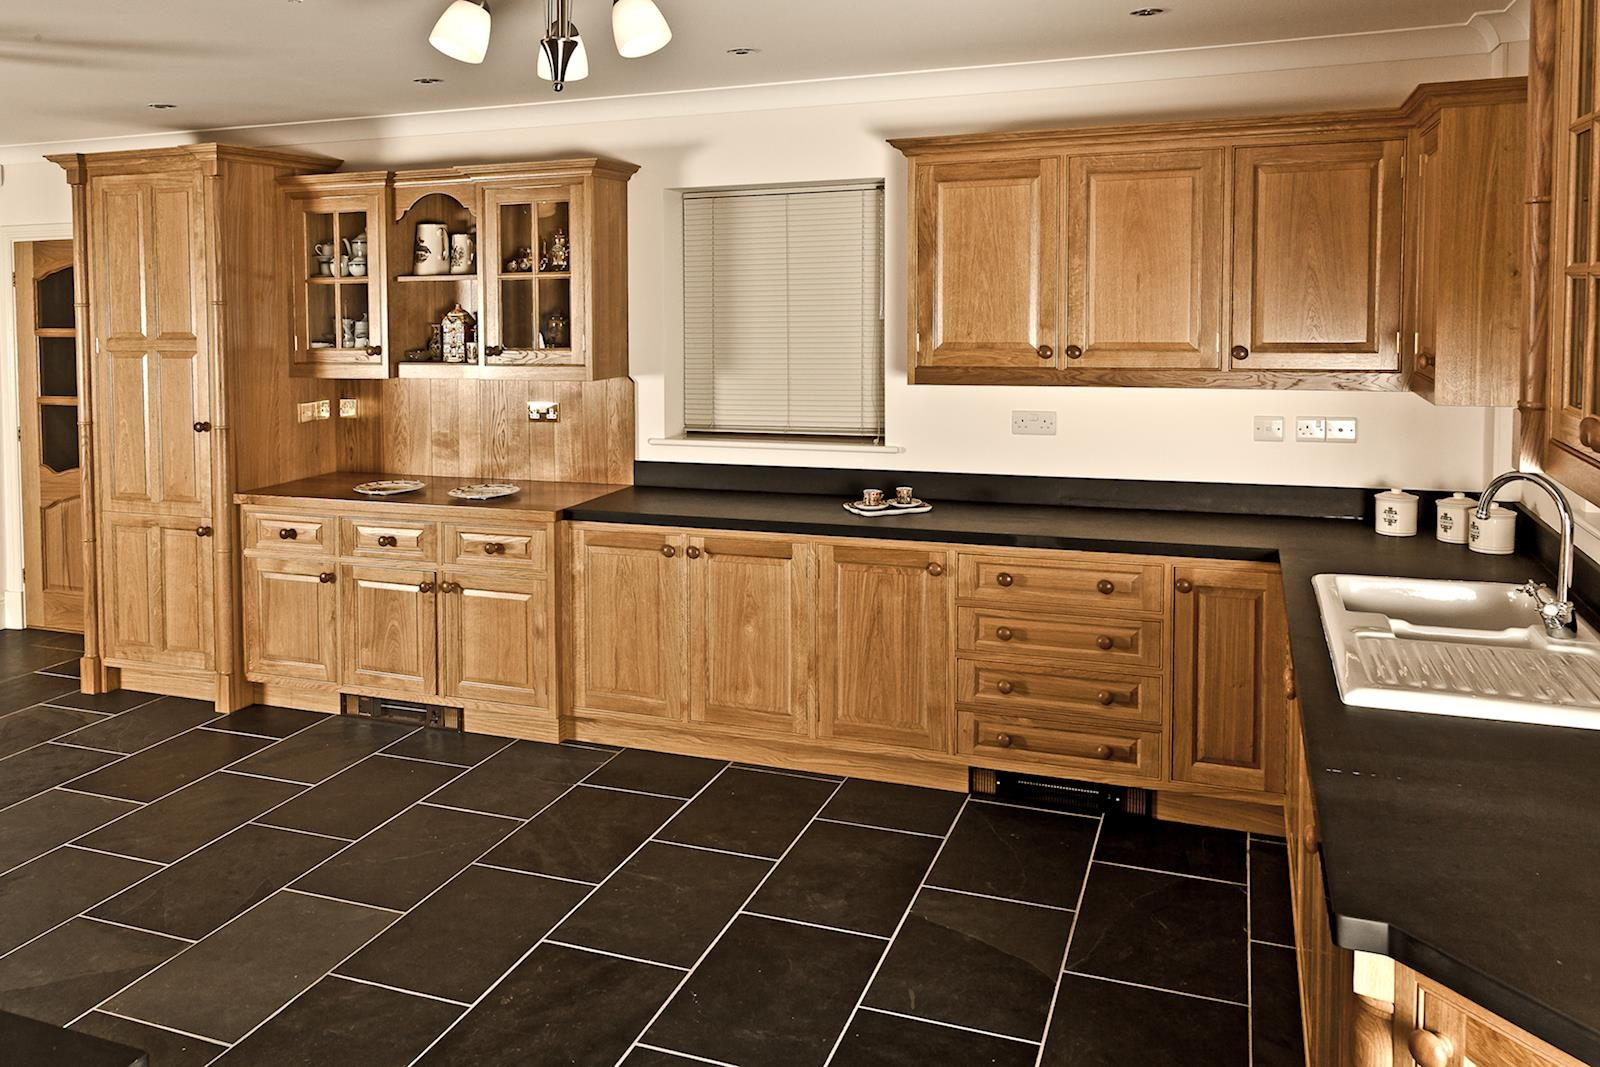 Oak kitchen pembrokeshire mark stone 39 s welsh kitchens for Oak kitchen ideas designs